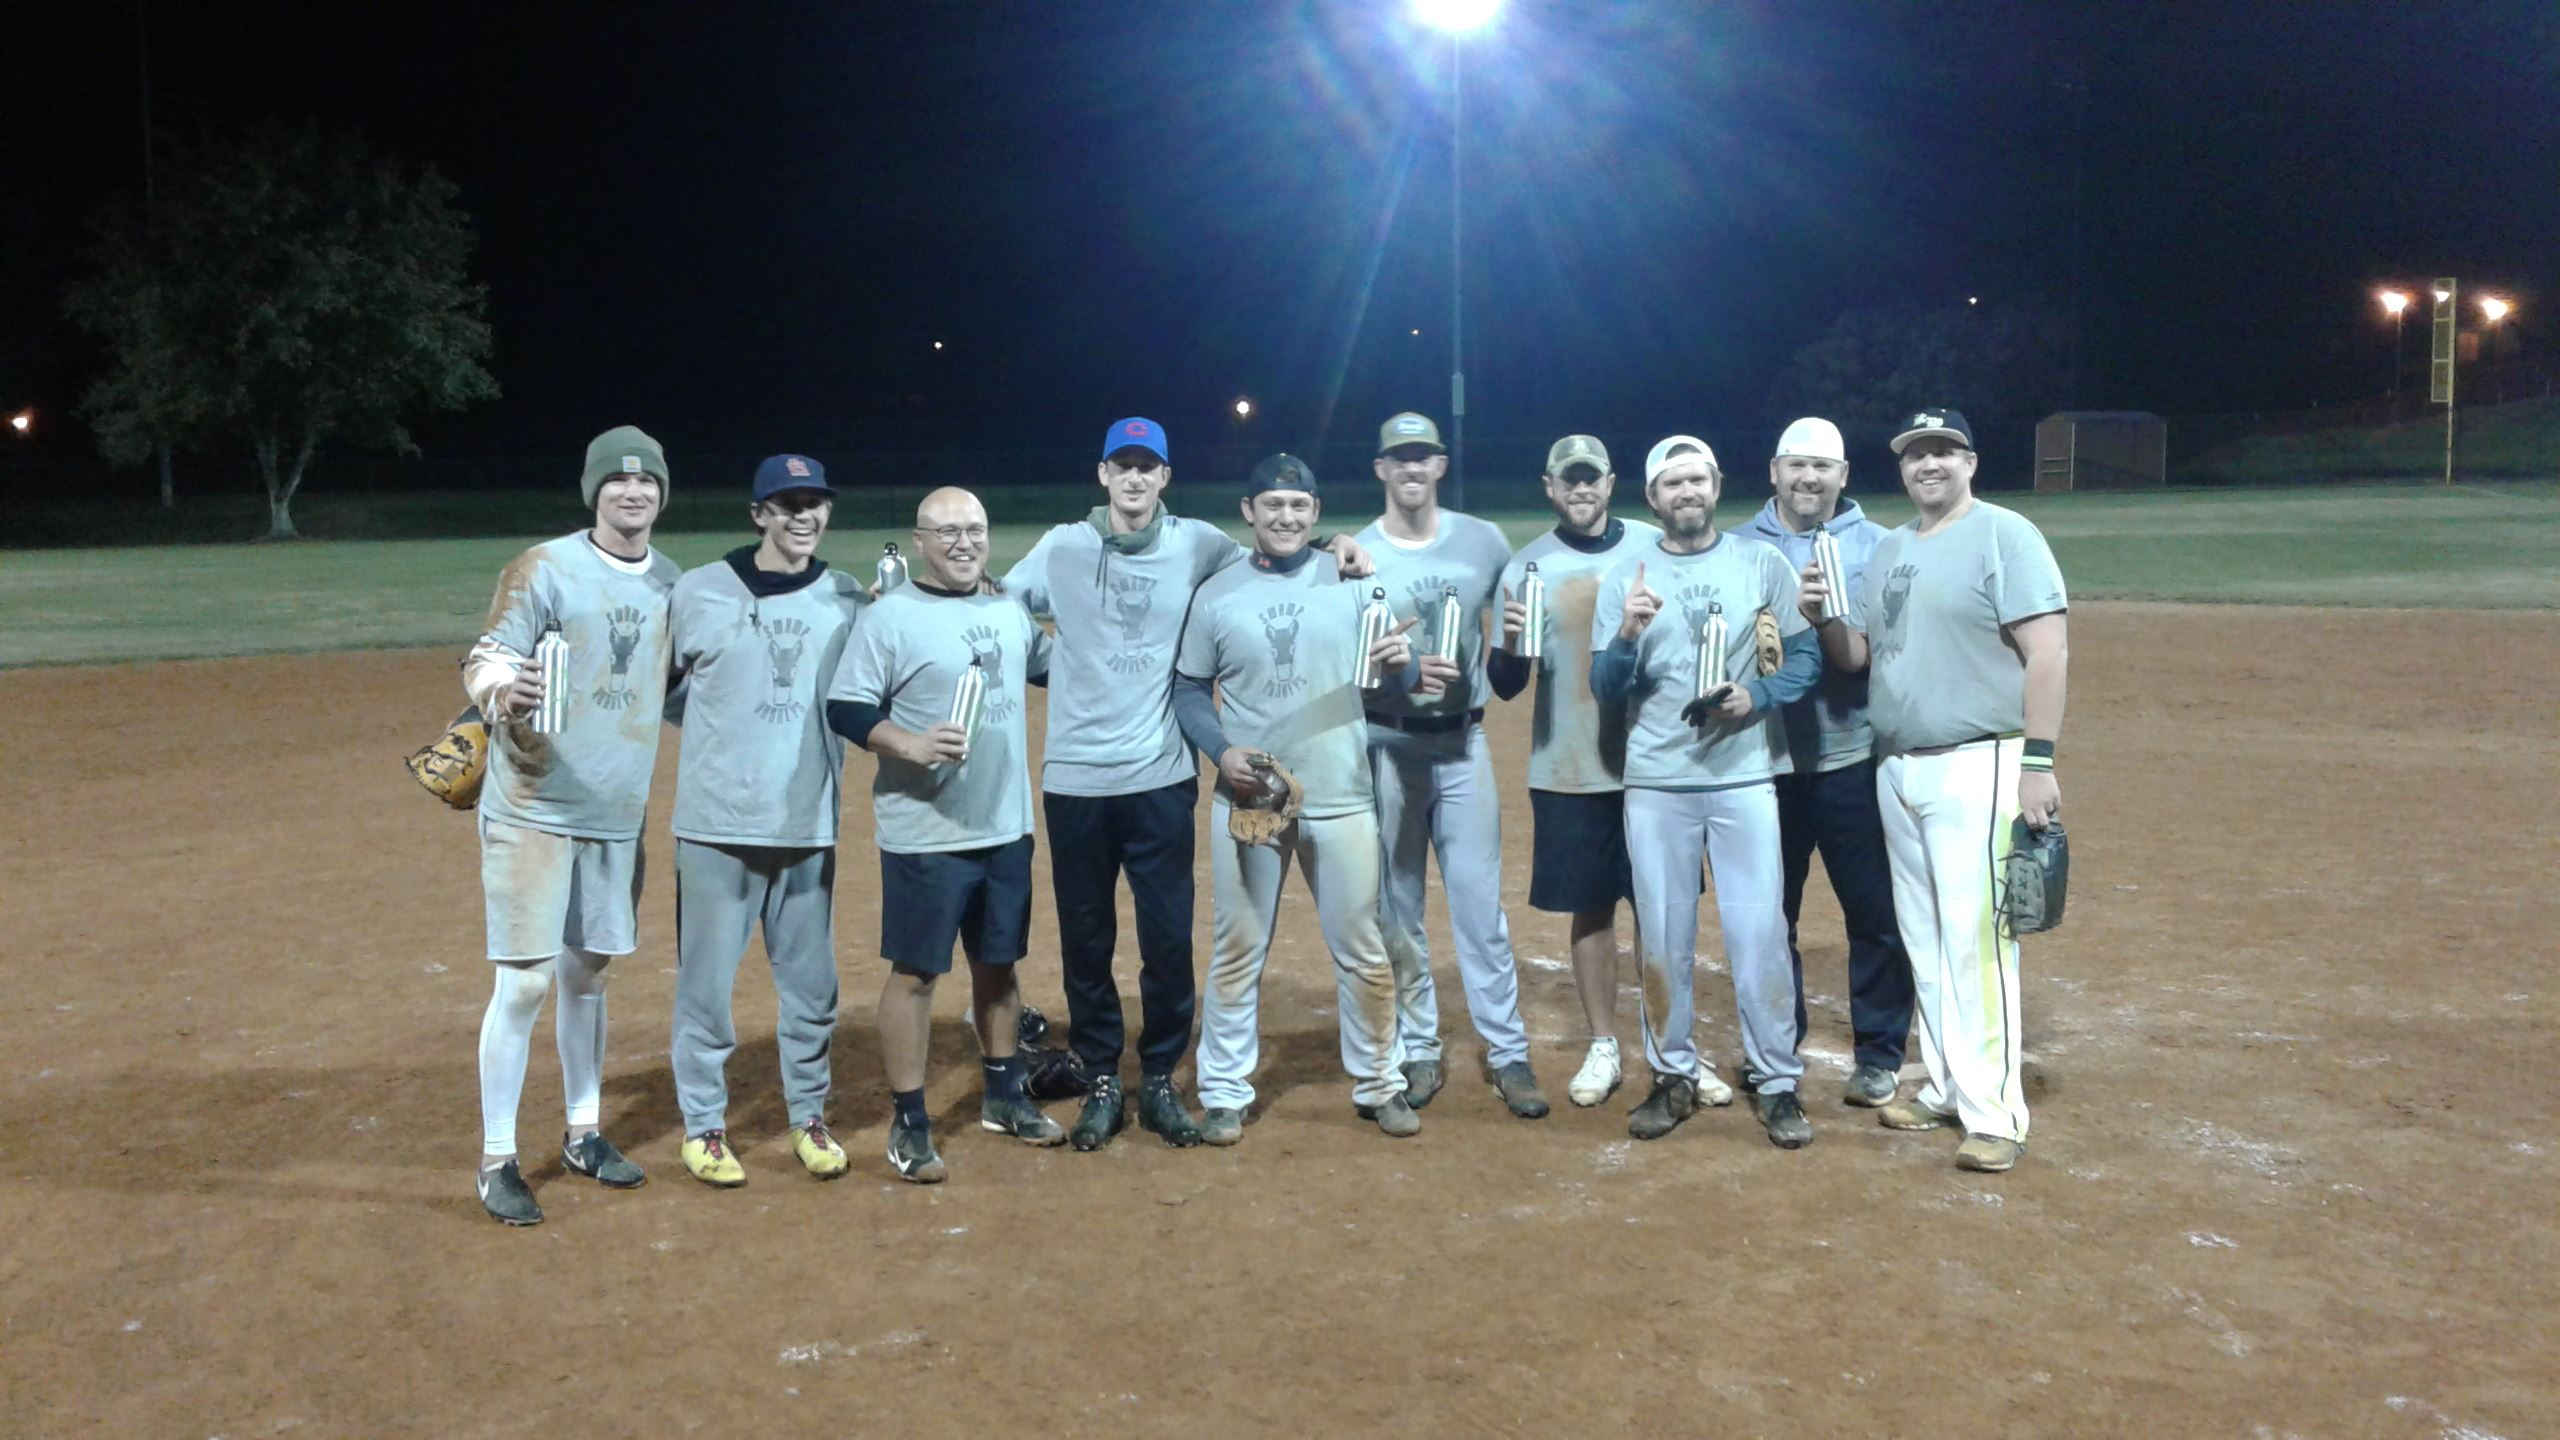 Fall 2017 Men's League Champions - Swamp Donkeys